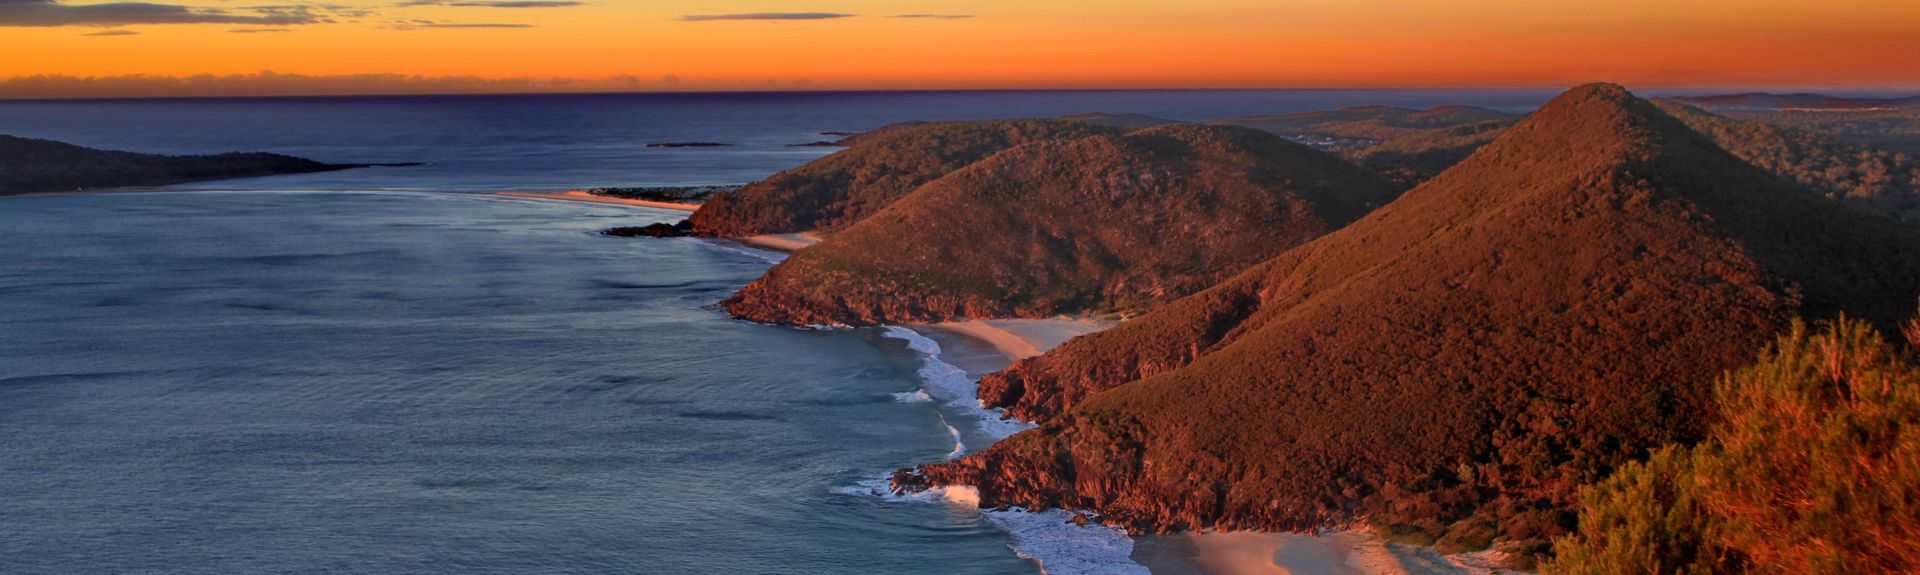 Point Stephens Lighthouse, Fingal Bay, New South Wales, Australia